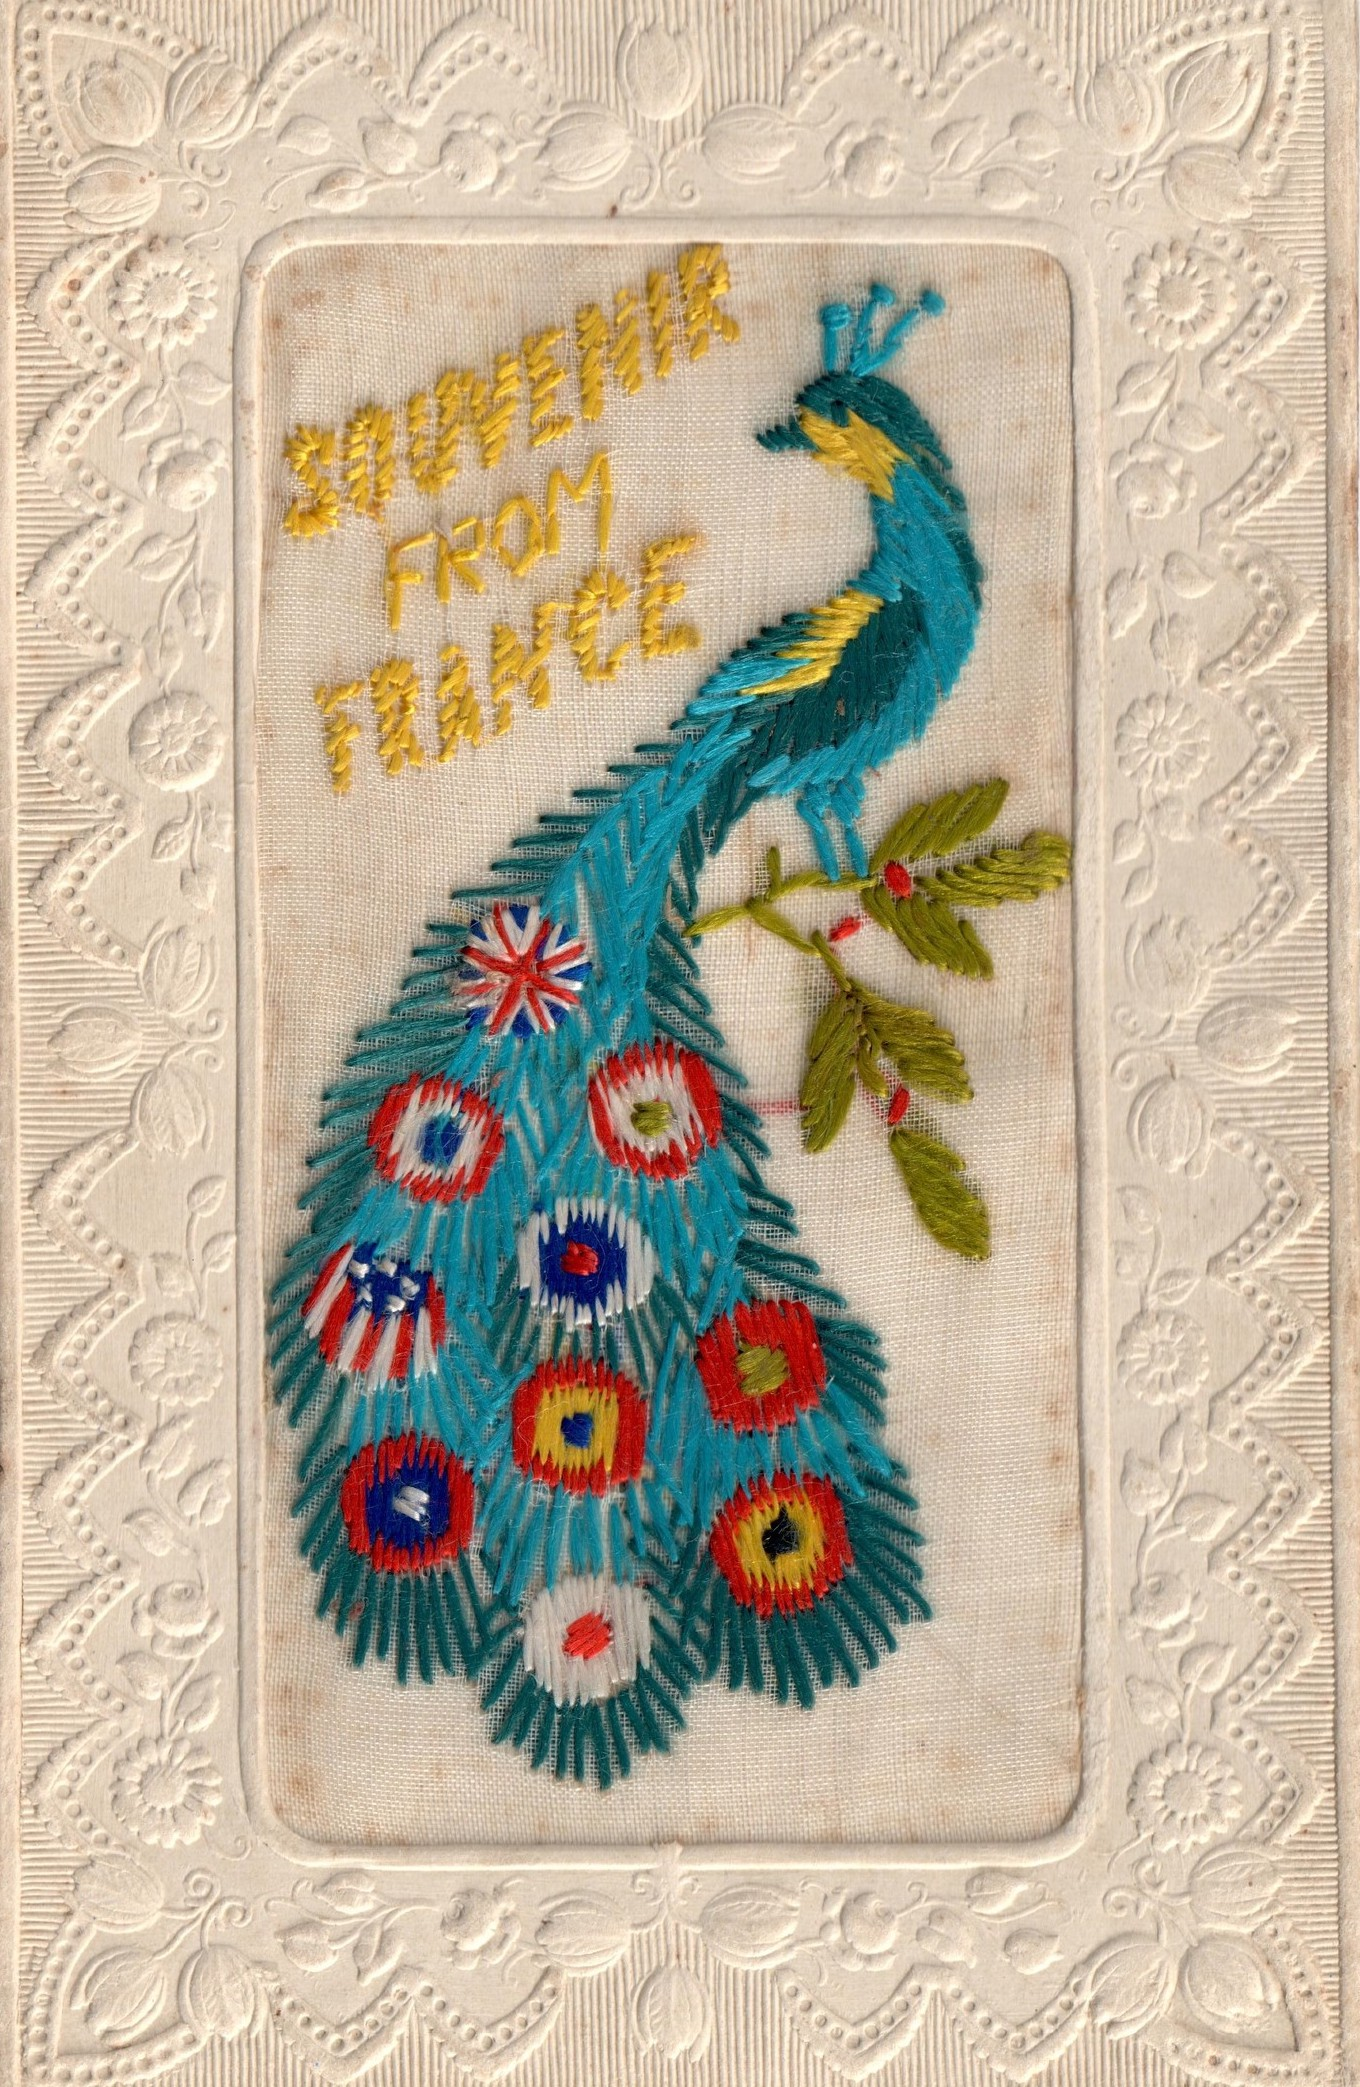 Embroidered postcard from the First World War, with the flags of the Allies depicted on the feathers of a peacock (TRC 2015.0434).